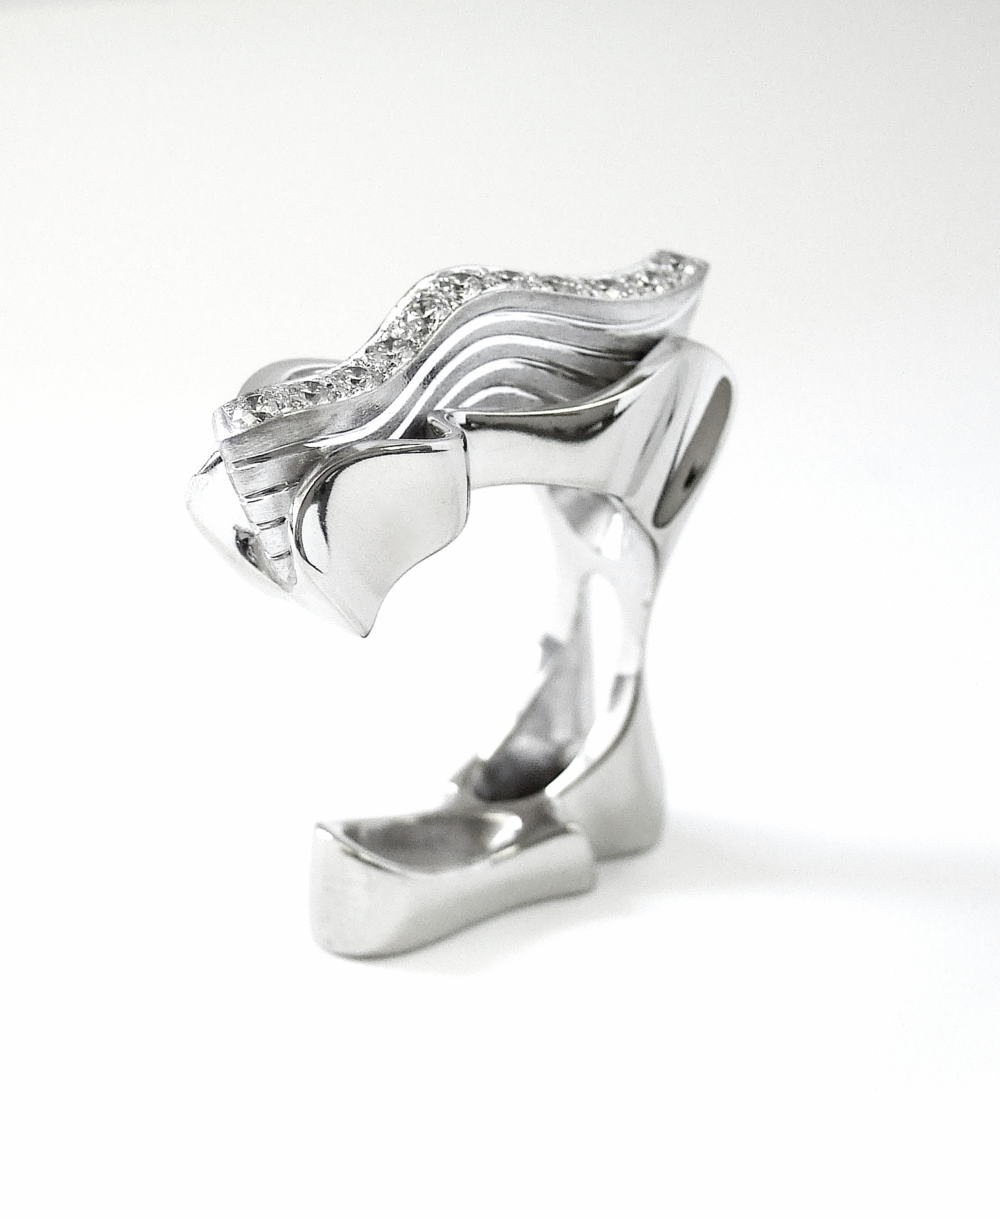 'Glacier' ring by Reena Ahluwalia. Canadian diamonds set in 18K white gold.